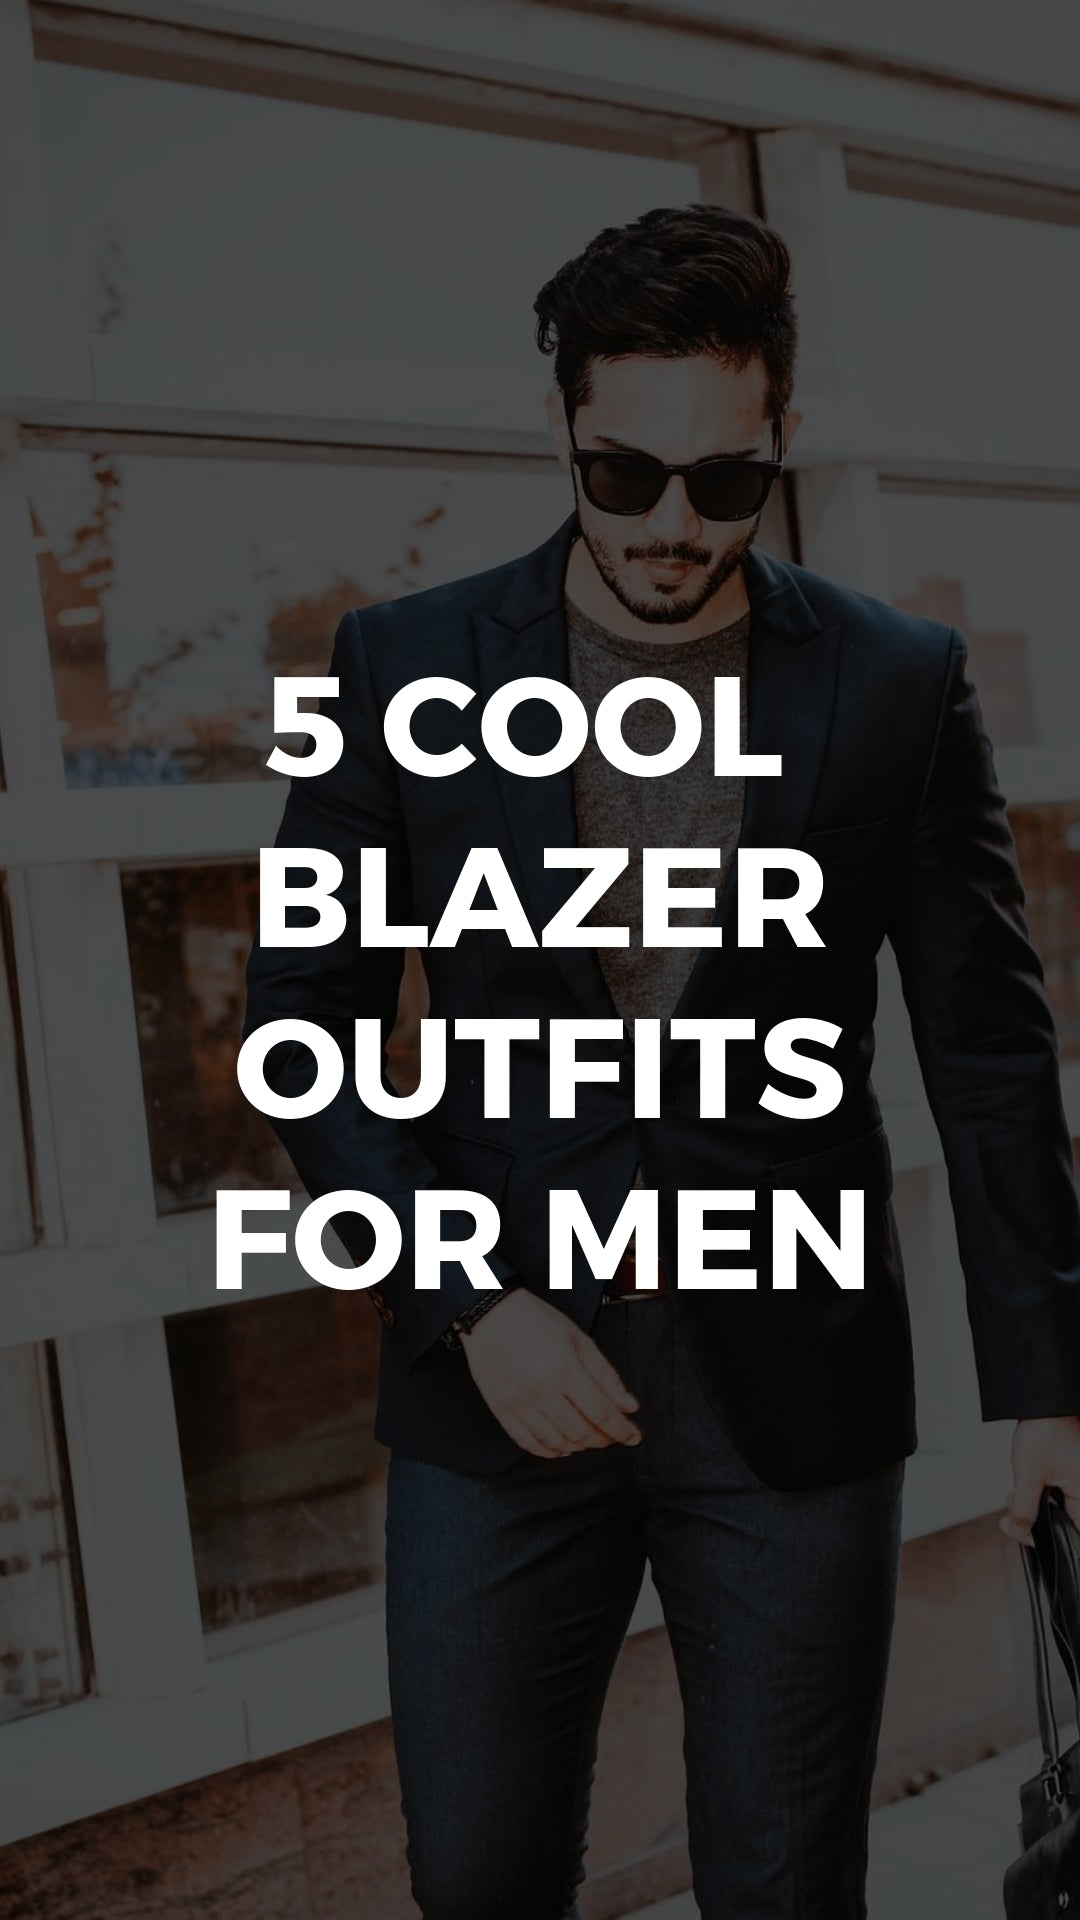 The Cool Blazer Outfits I'm Copying #blazer #outfits #mensfashion #streetstyle